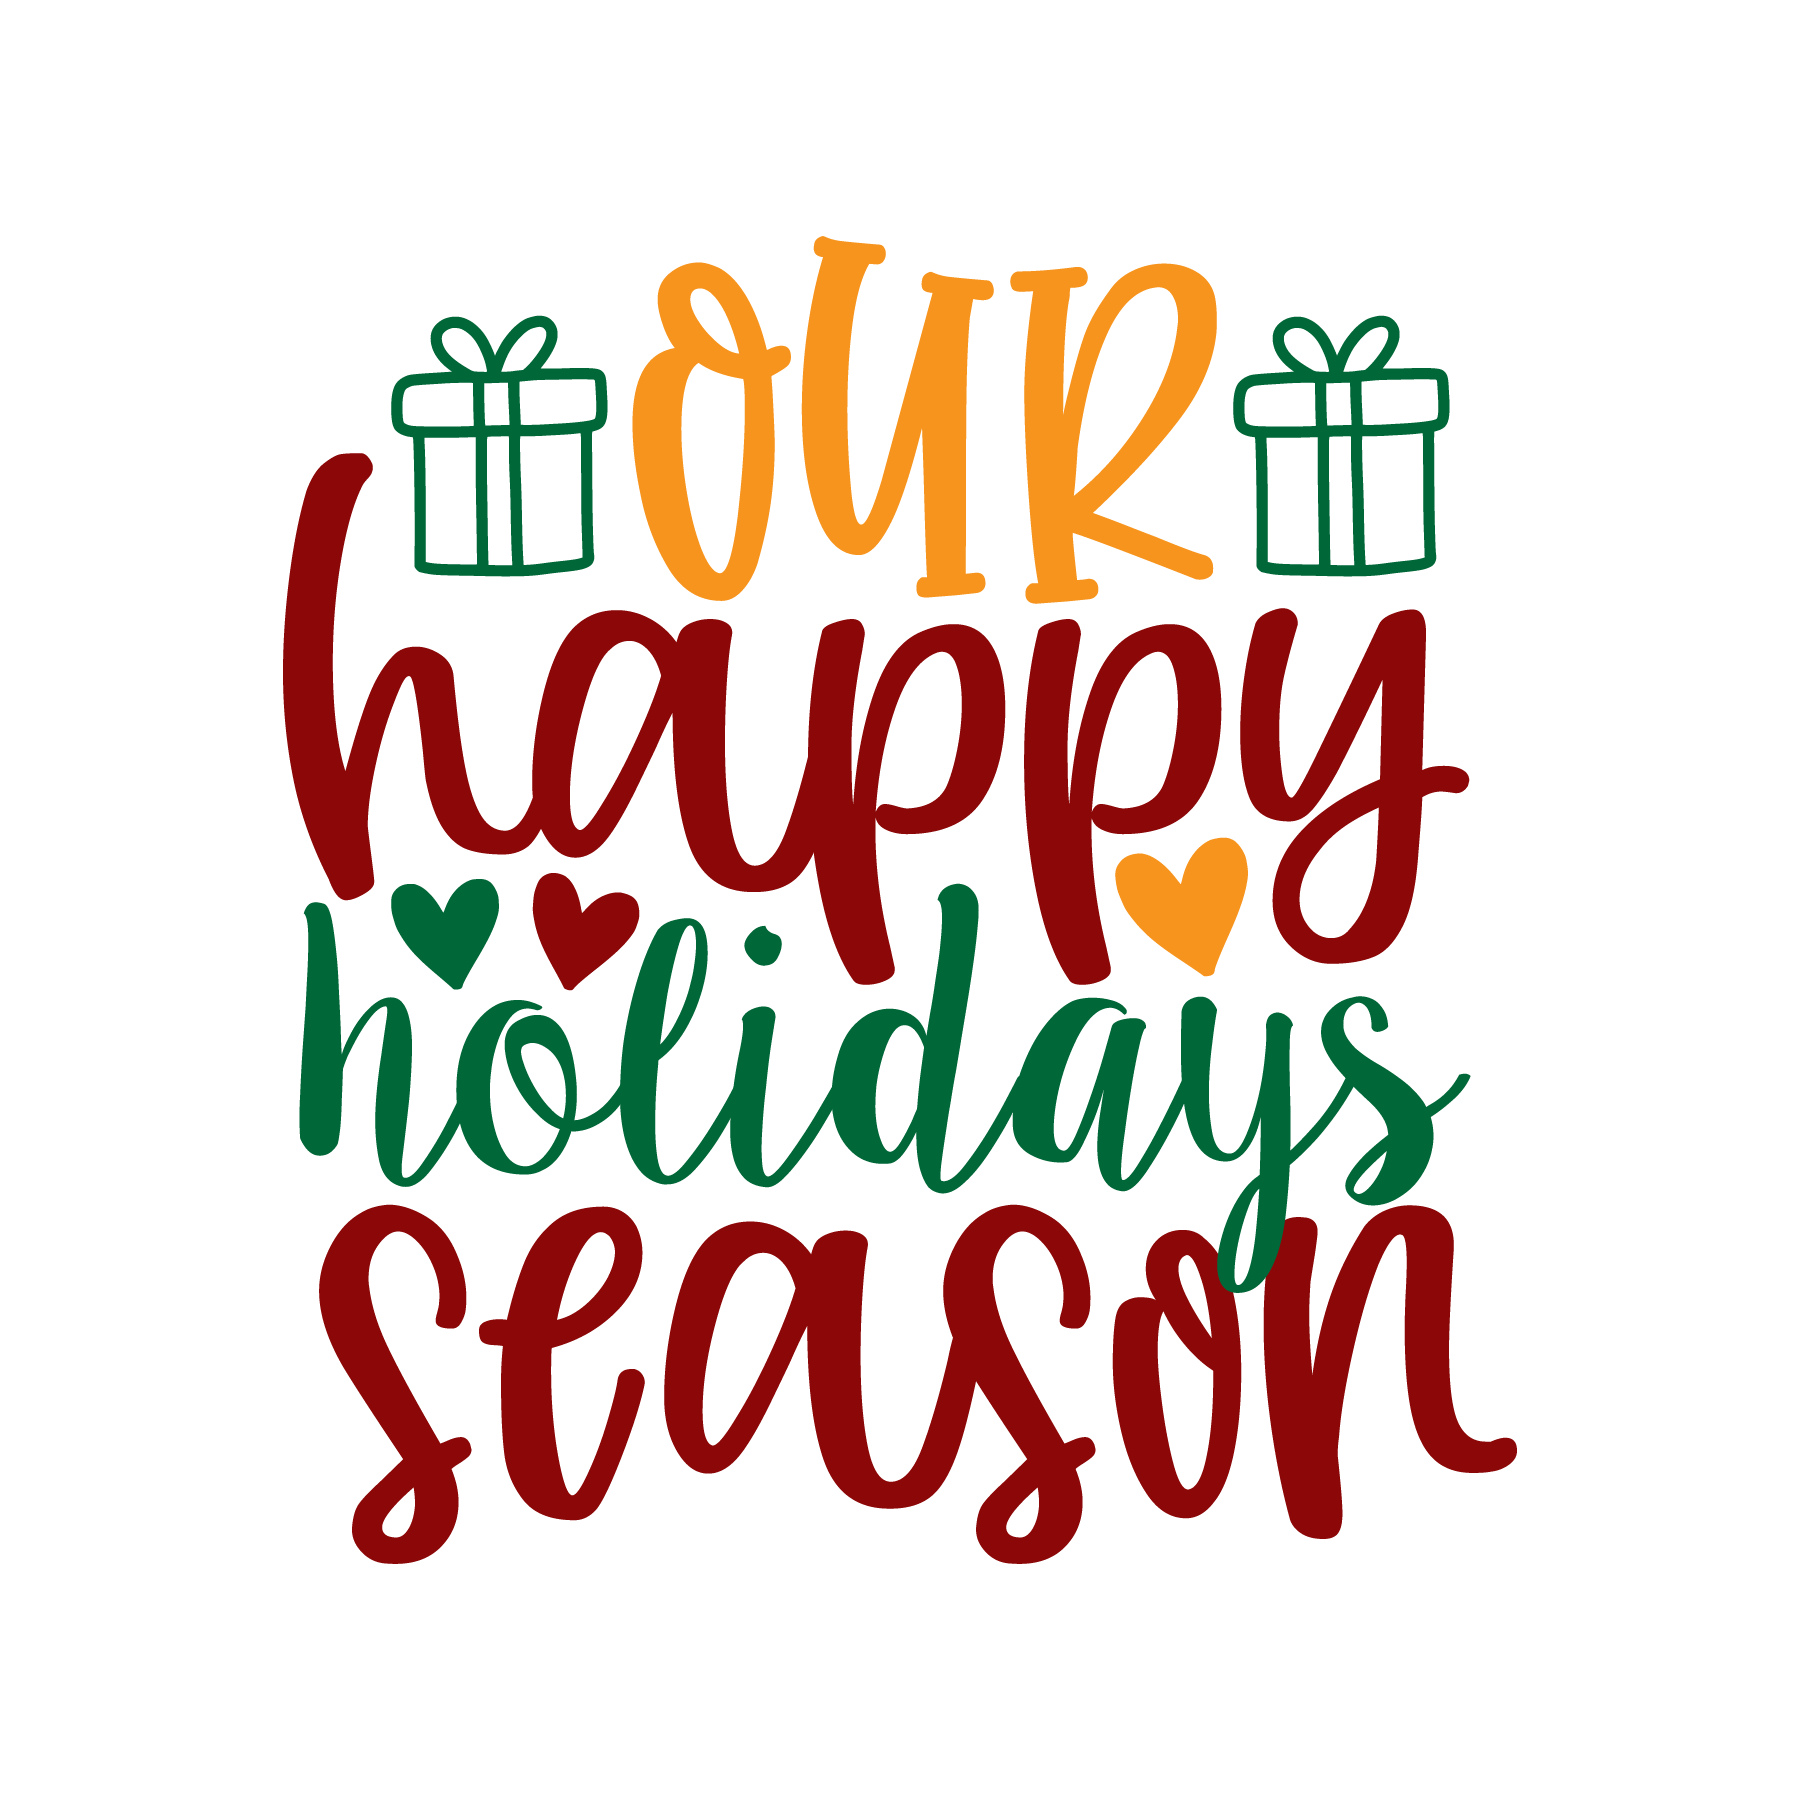 Our Happy Holidays Season SVG Cut Files